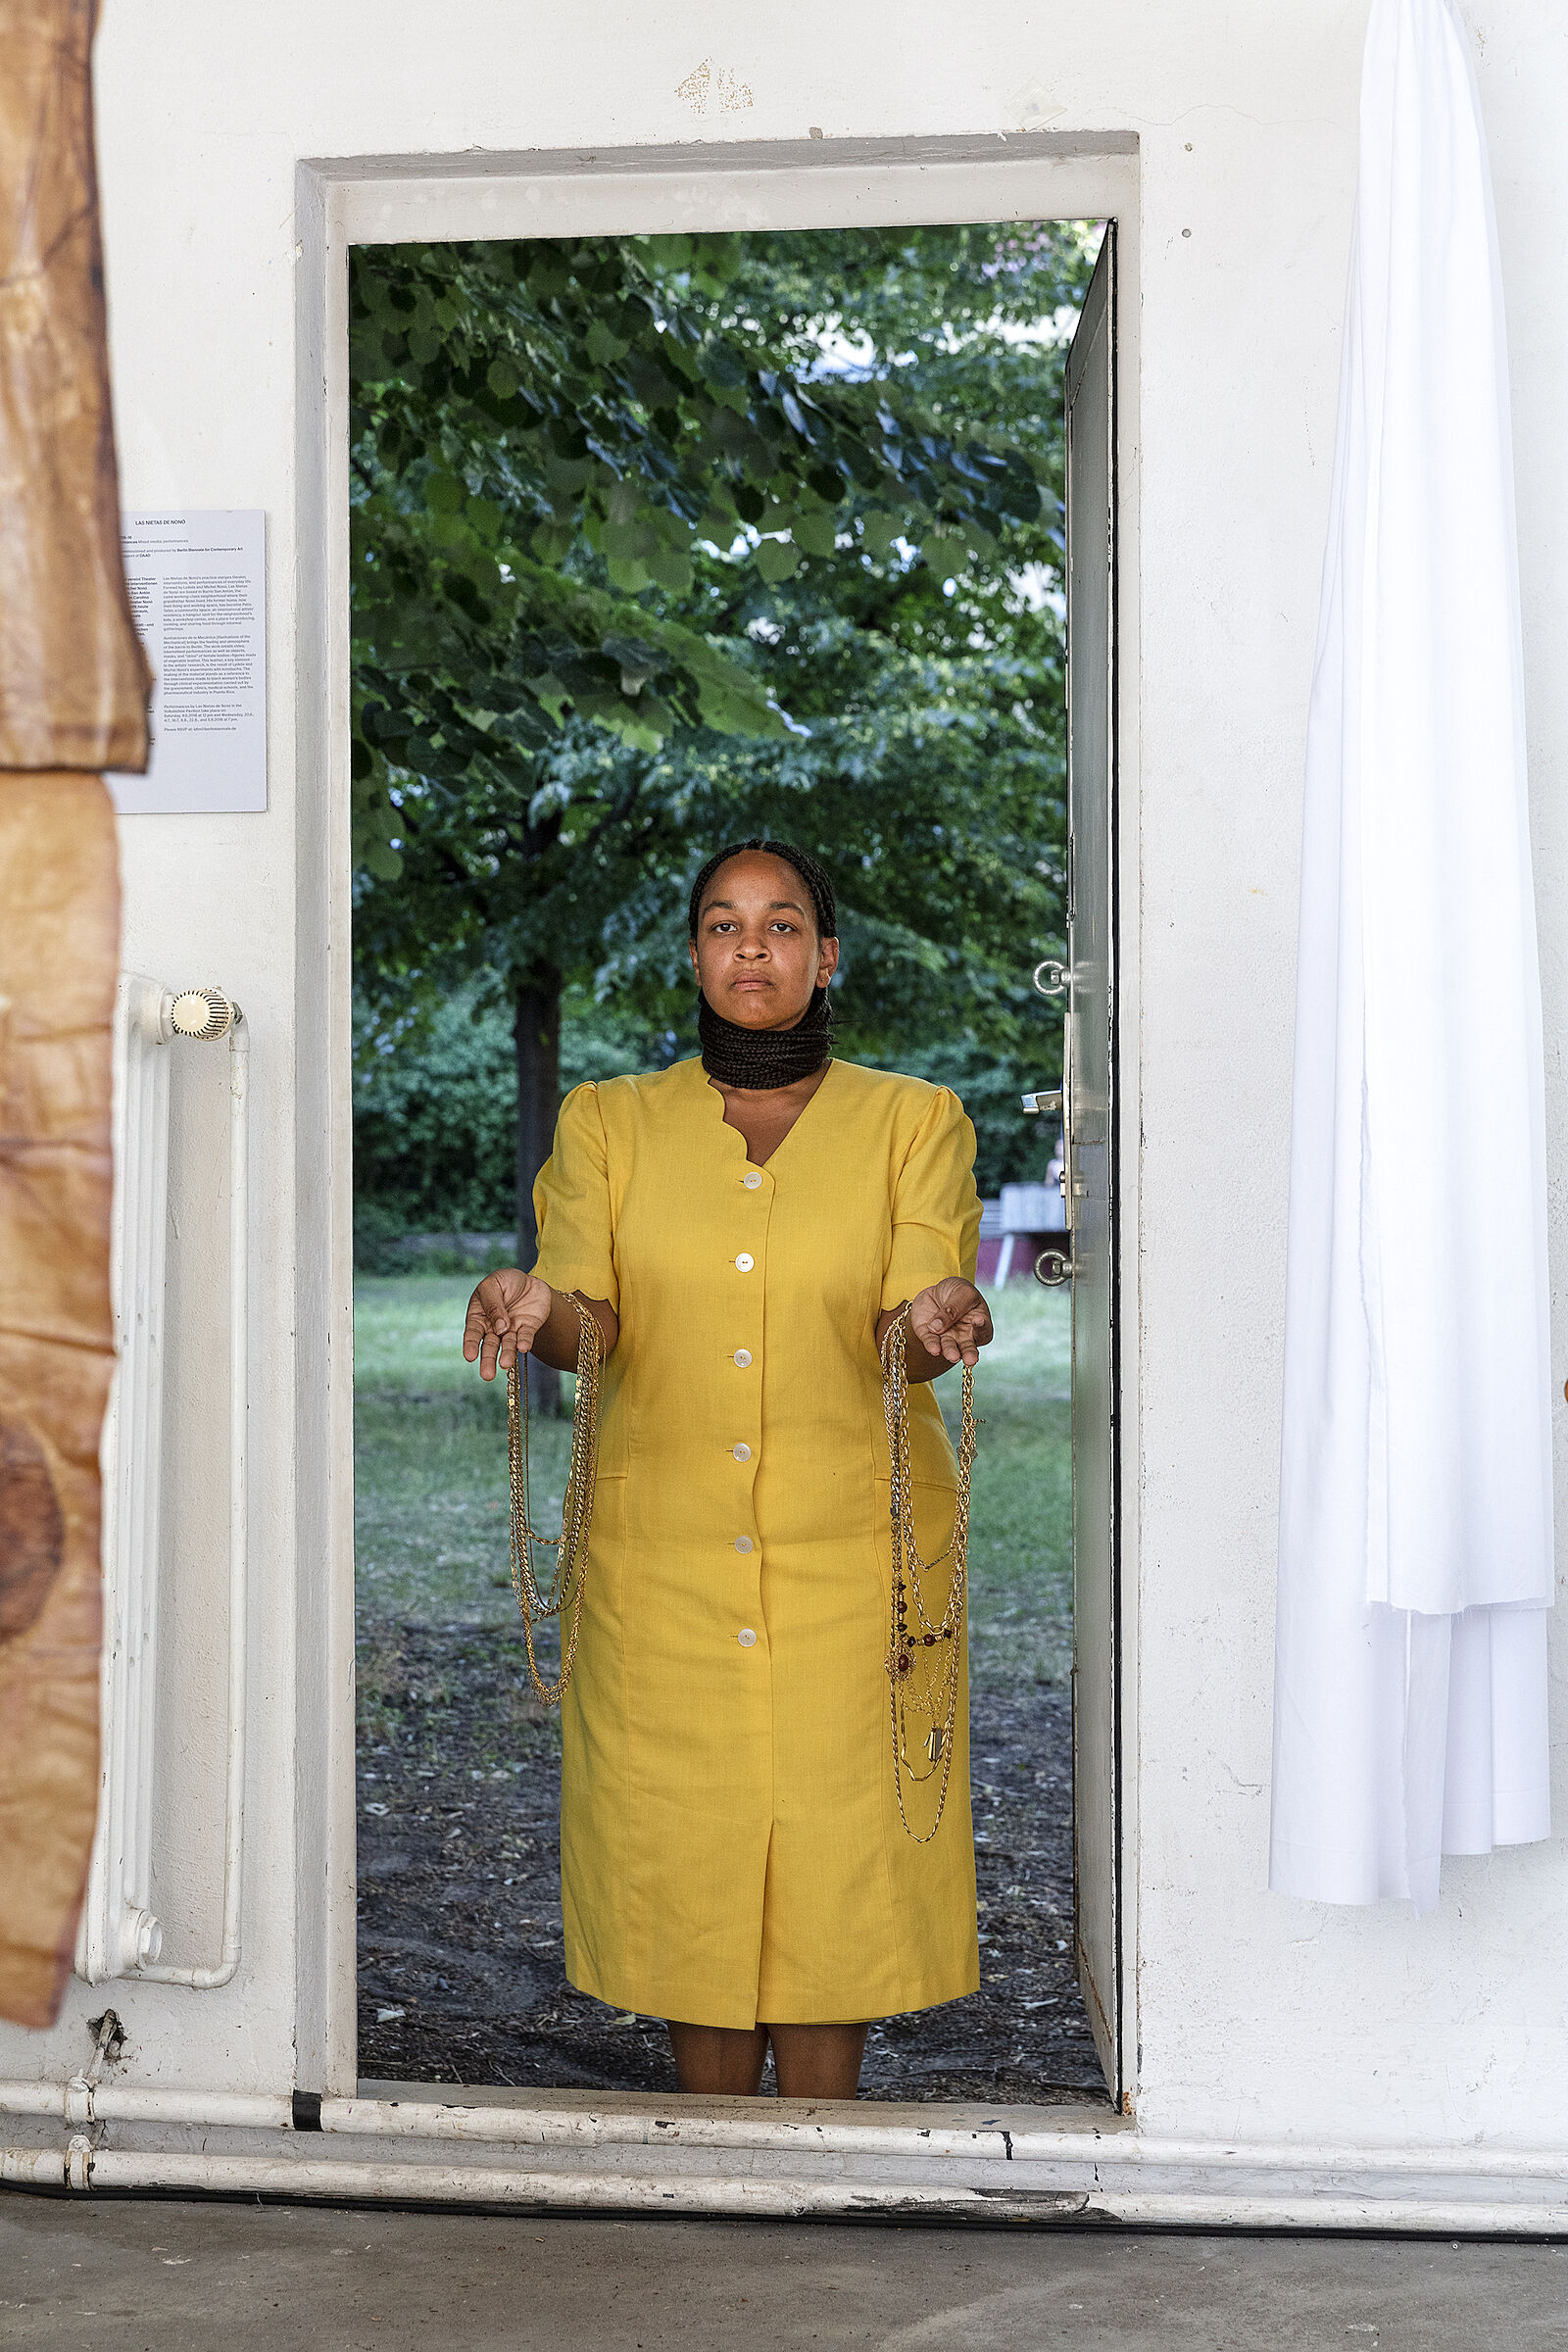 A view of a woman in a yellow dress standing in a doorway that leads to a yard.